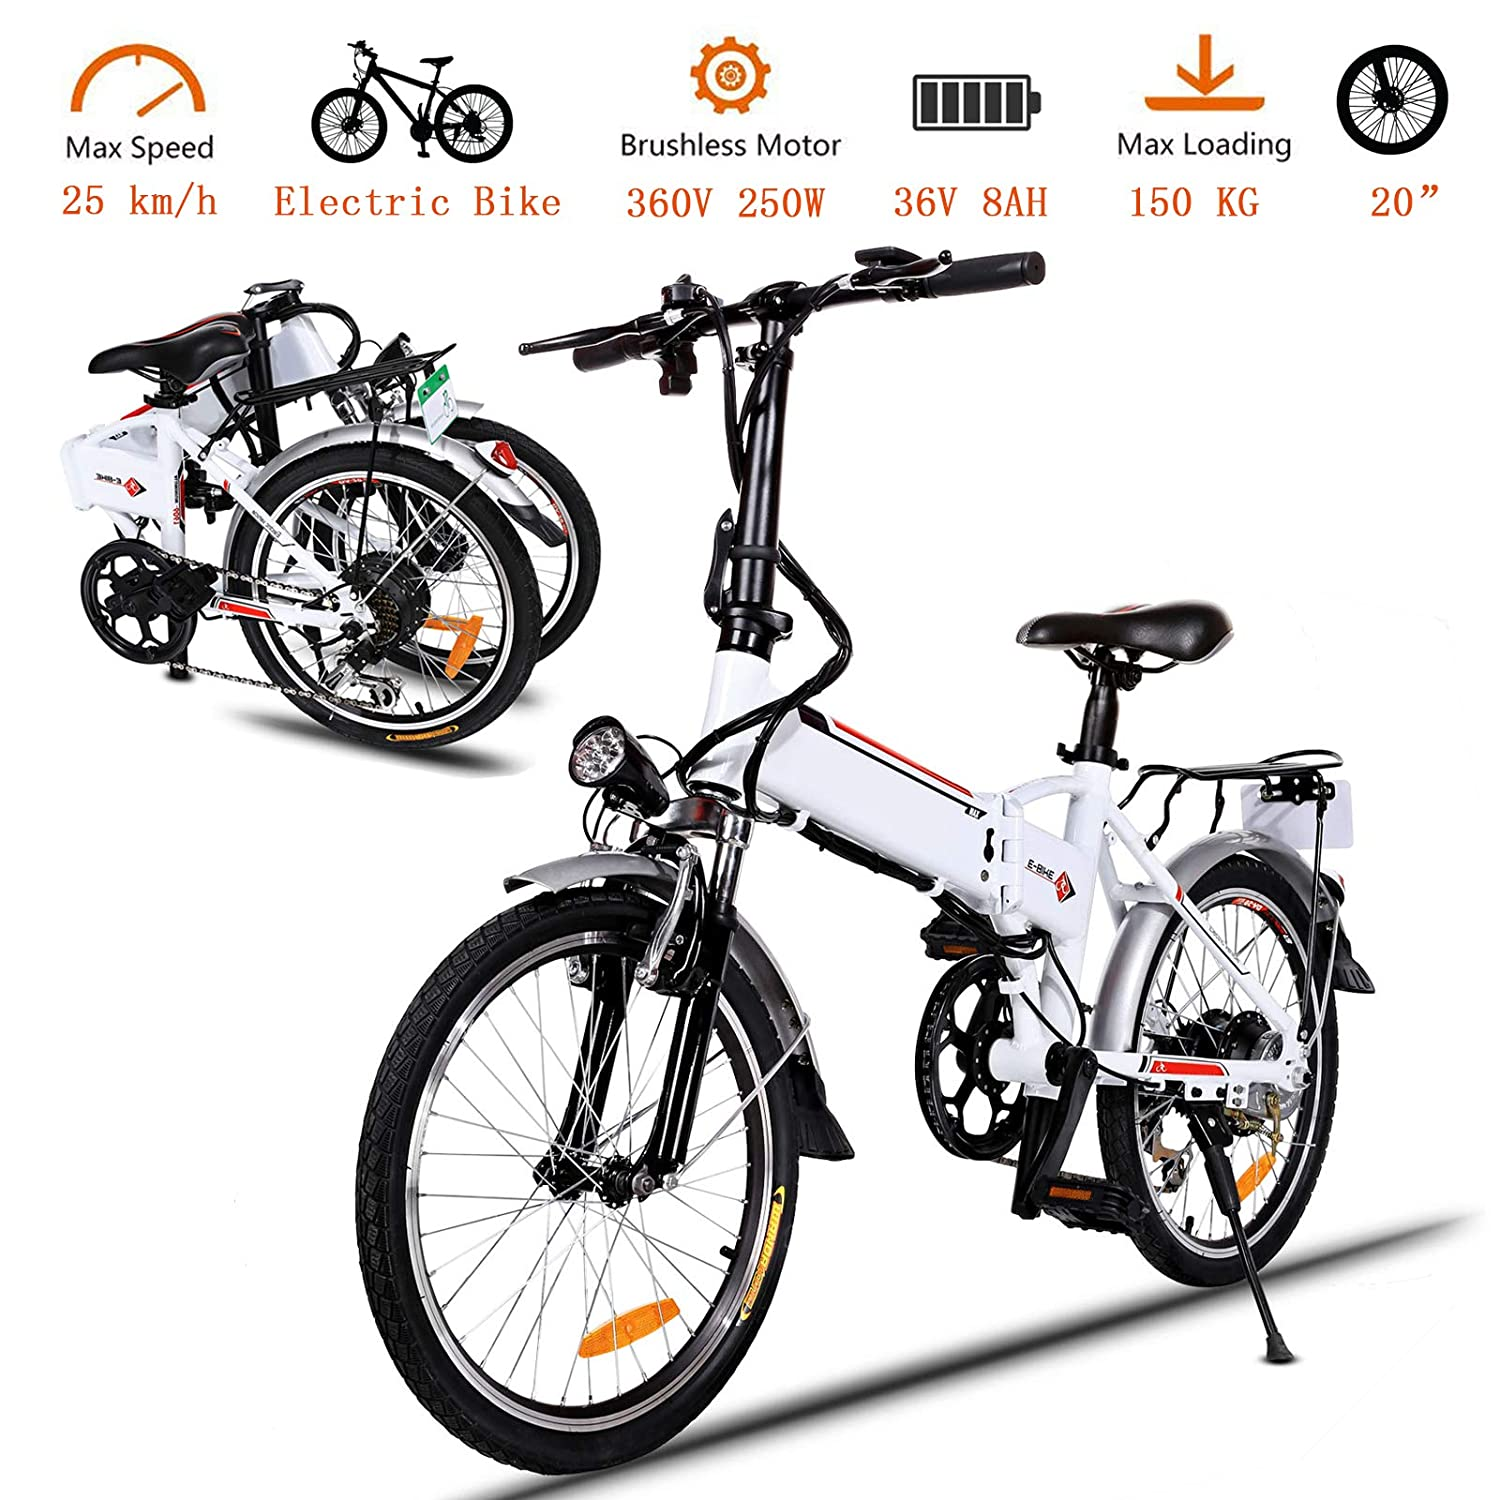 Korie 20 Folding Electric Bike with 36V Lithium-Ion Battery, 250W Motor and 7 Speed Shifter Lightweight E-Bike for Adults